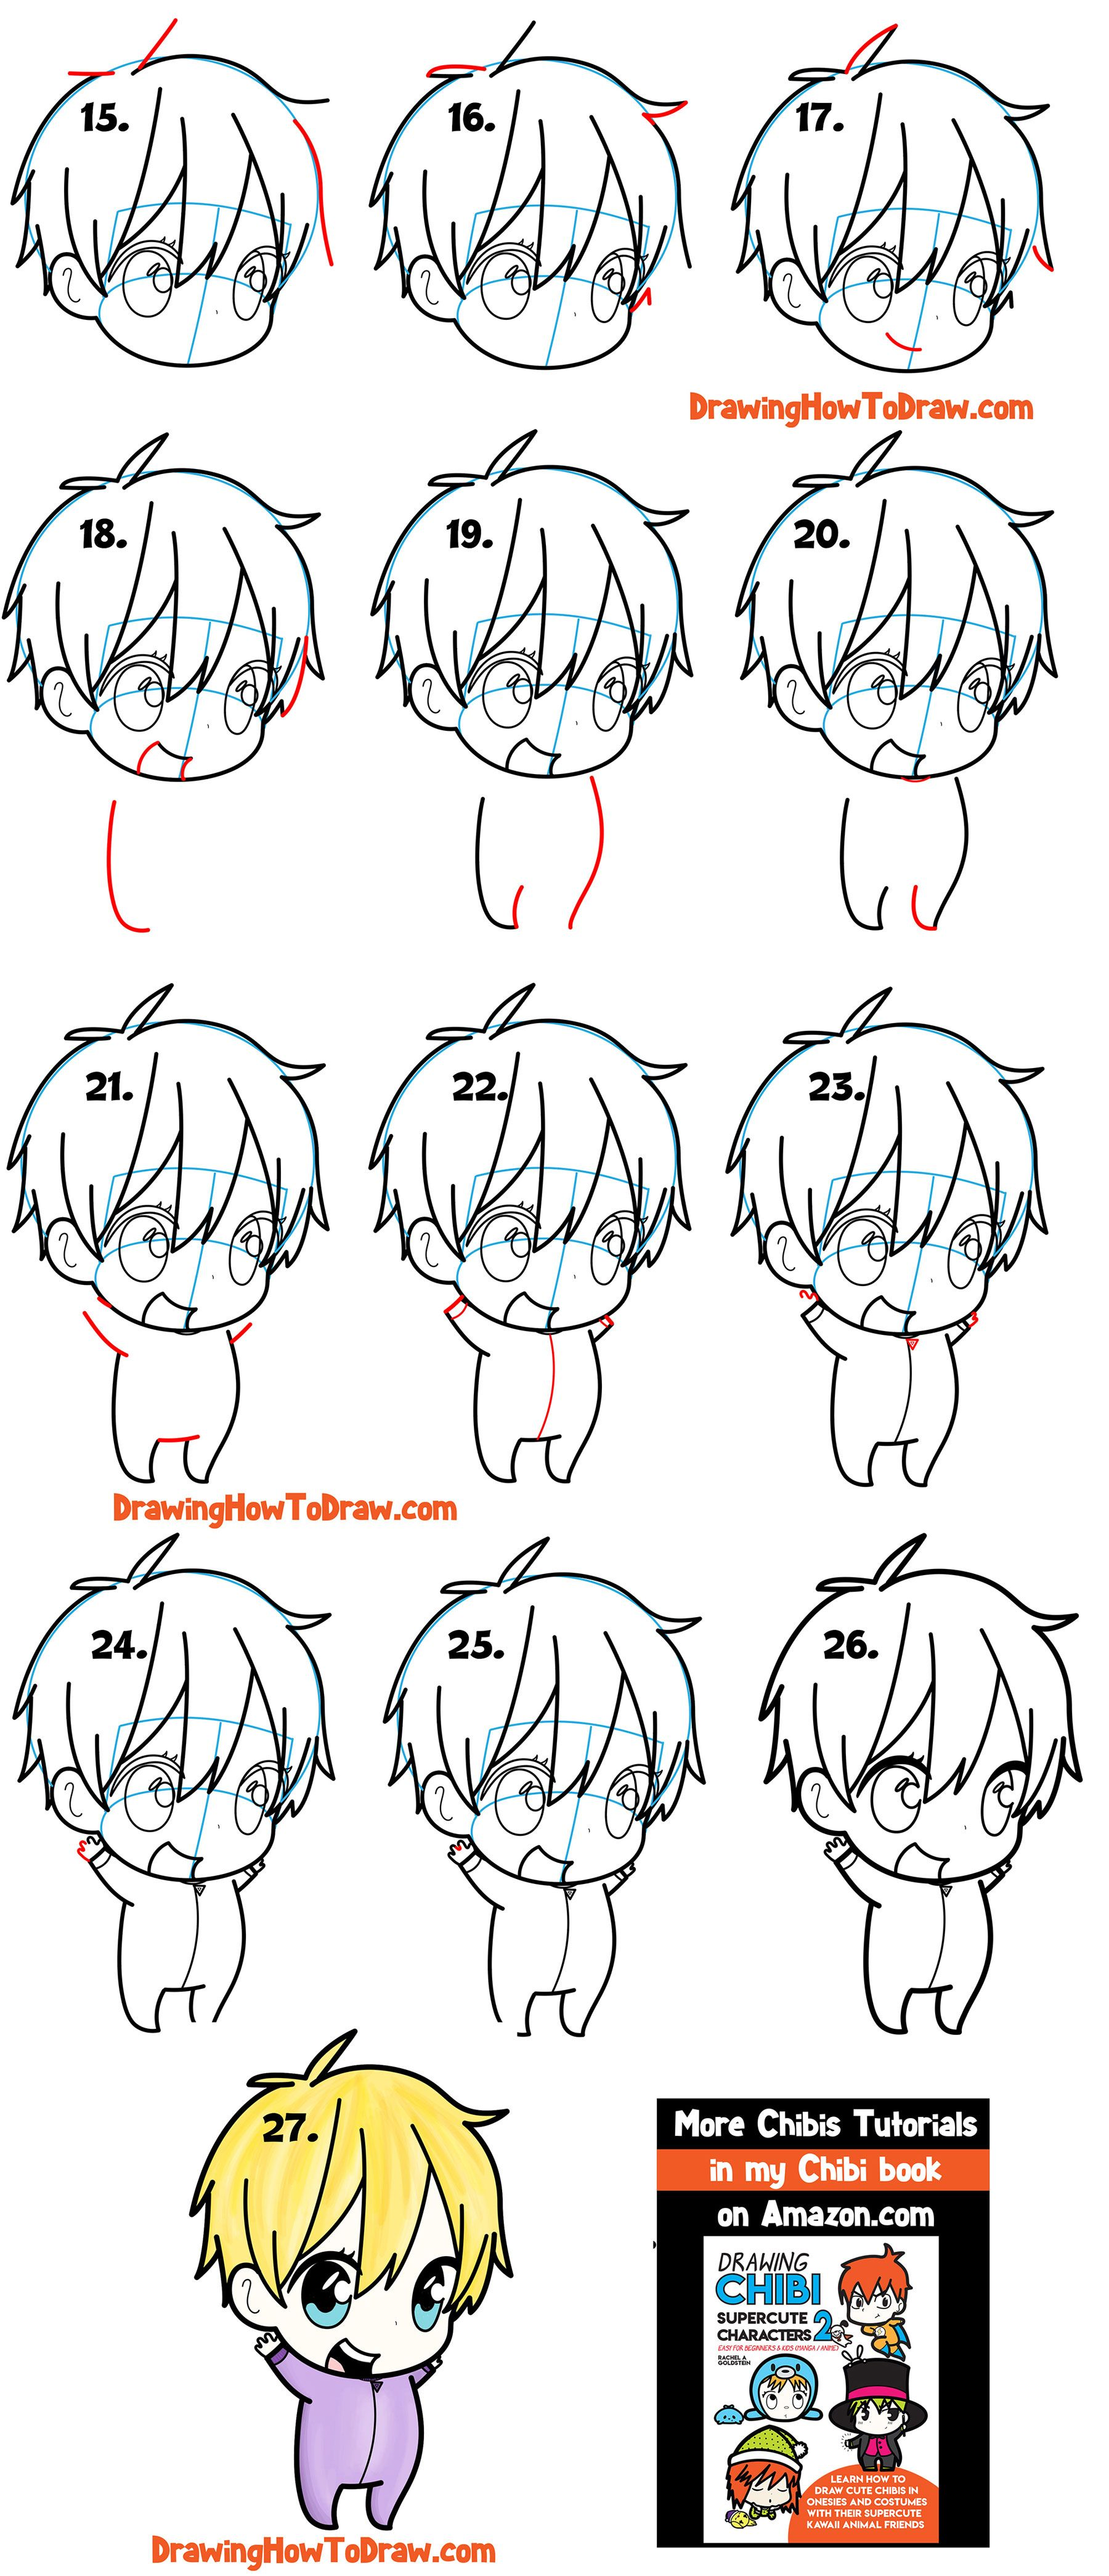 How to draw a cute chibi boy easy step by step drawing